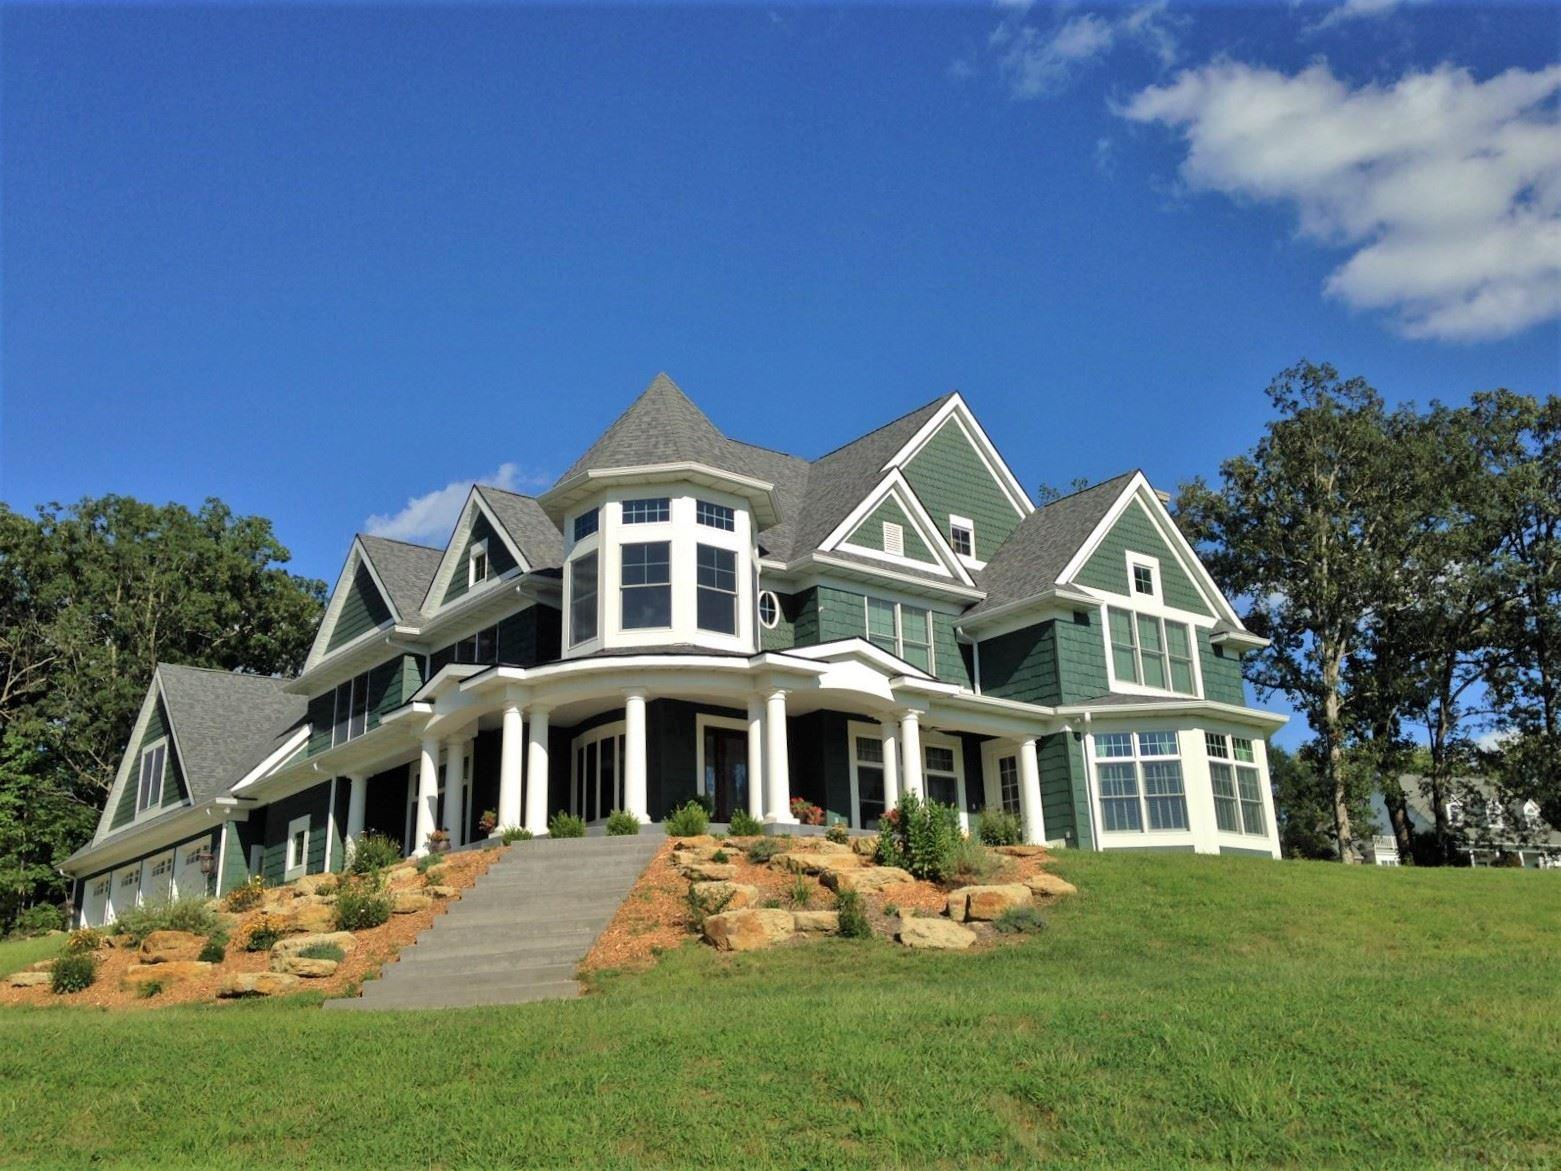 "MOTIVATED SELLER! This majestic, spacious Victorian home sits on 1.3 acres atop a hill overlooking Christmas Lake, and watches the sun set behind the water every night. The magnificent 23+ foot tall rotunda surrounded by the winding staircase is the centerpiece of this impressive home. The flooring on the main floor is all travertine, marble, and 3/4"" solid black walnut. The spacious kitchen features custom cabinetry, granite countertops, 2 copper sinks, double oven, 6-burner premium gas cooktop with ultra low settings, and walk-in pantry. The open great room just off the kitchen has a fireplace plumbed for gas, with a custom, hand-carved marble mantle, made in Europe. The sitting room/study has a 21+ foot ceiling, abundance of windows, and second fireplace, plumbed for gas, with custom, hand-carved marble mantle. The dining room with custom-made chandelier, den, spacious laundry room, and two half bathrooms complete the main floor. Upstairs you will find a sprawling master suite,with vaulted ceiling, and breathtaking view of the lake. The master bathroom showcases a Hydro-massage tub, double-bowl vanity, walk-in shower, and walk-in closet. Two more bedrooms share a Jack-n-Jill bathroom, and the 4th bedroom has it's own bathroom. The second den with bay windows could be converted into a 5th bedroom. Upstairs you will also find a huge rec room with theater area that would be a dream play zone, for kids or adults! There is also a second laundry room area. Want even more space? The full, unfinished basement is plumbed for a kitchen and full bathroom, and is an empty canvas ready for you to paint your own masterpiece. The enormous 4-car garage has plenty of additional space for mowers and tools. This house was built with two stories of 6"" thick, insulated concrete form construction. This home also has geothermal HVAC and access to a private boat dock. Area amenities include golfing, boating, fishing, quick access to Holiday World, and top tier Blue Ribbon school system. You will feel like you are on a permanent luxury vacation living in this gorgeous home."